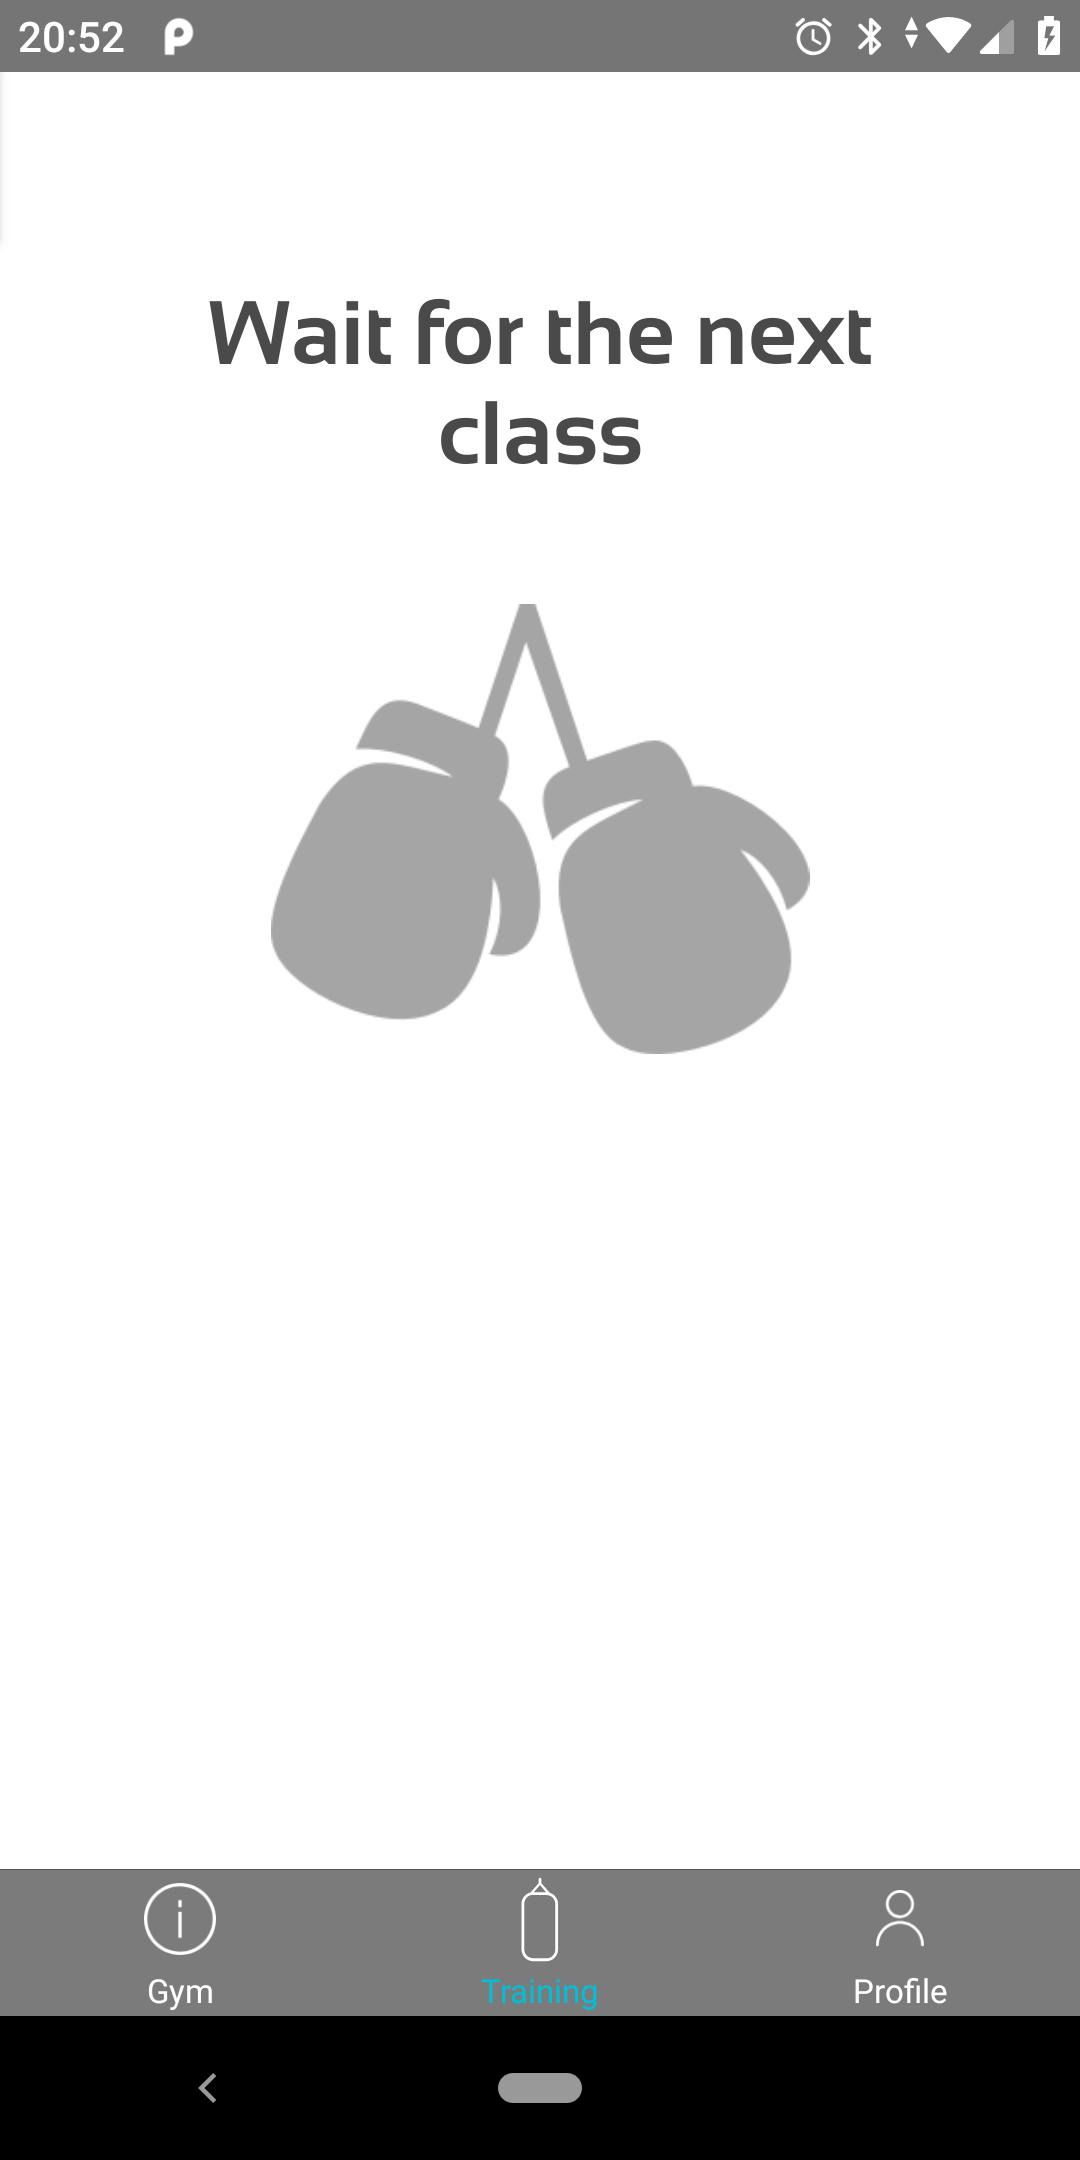 PunchLab for Gyms for Android - APK Download